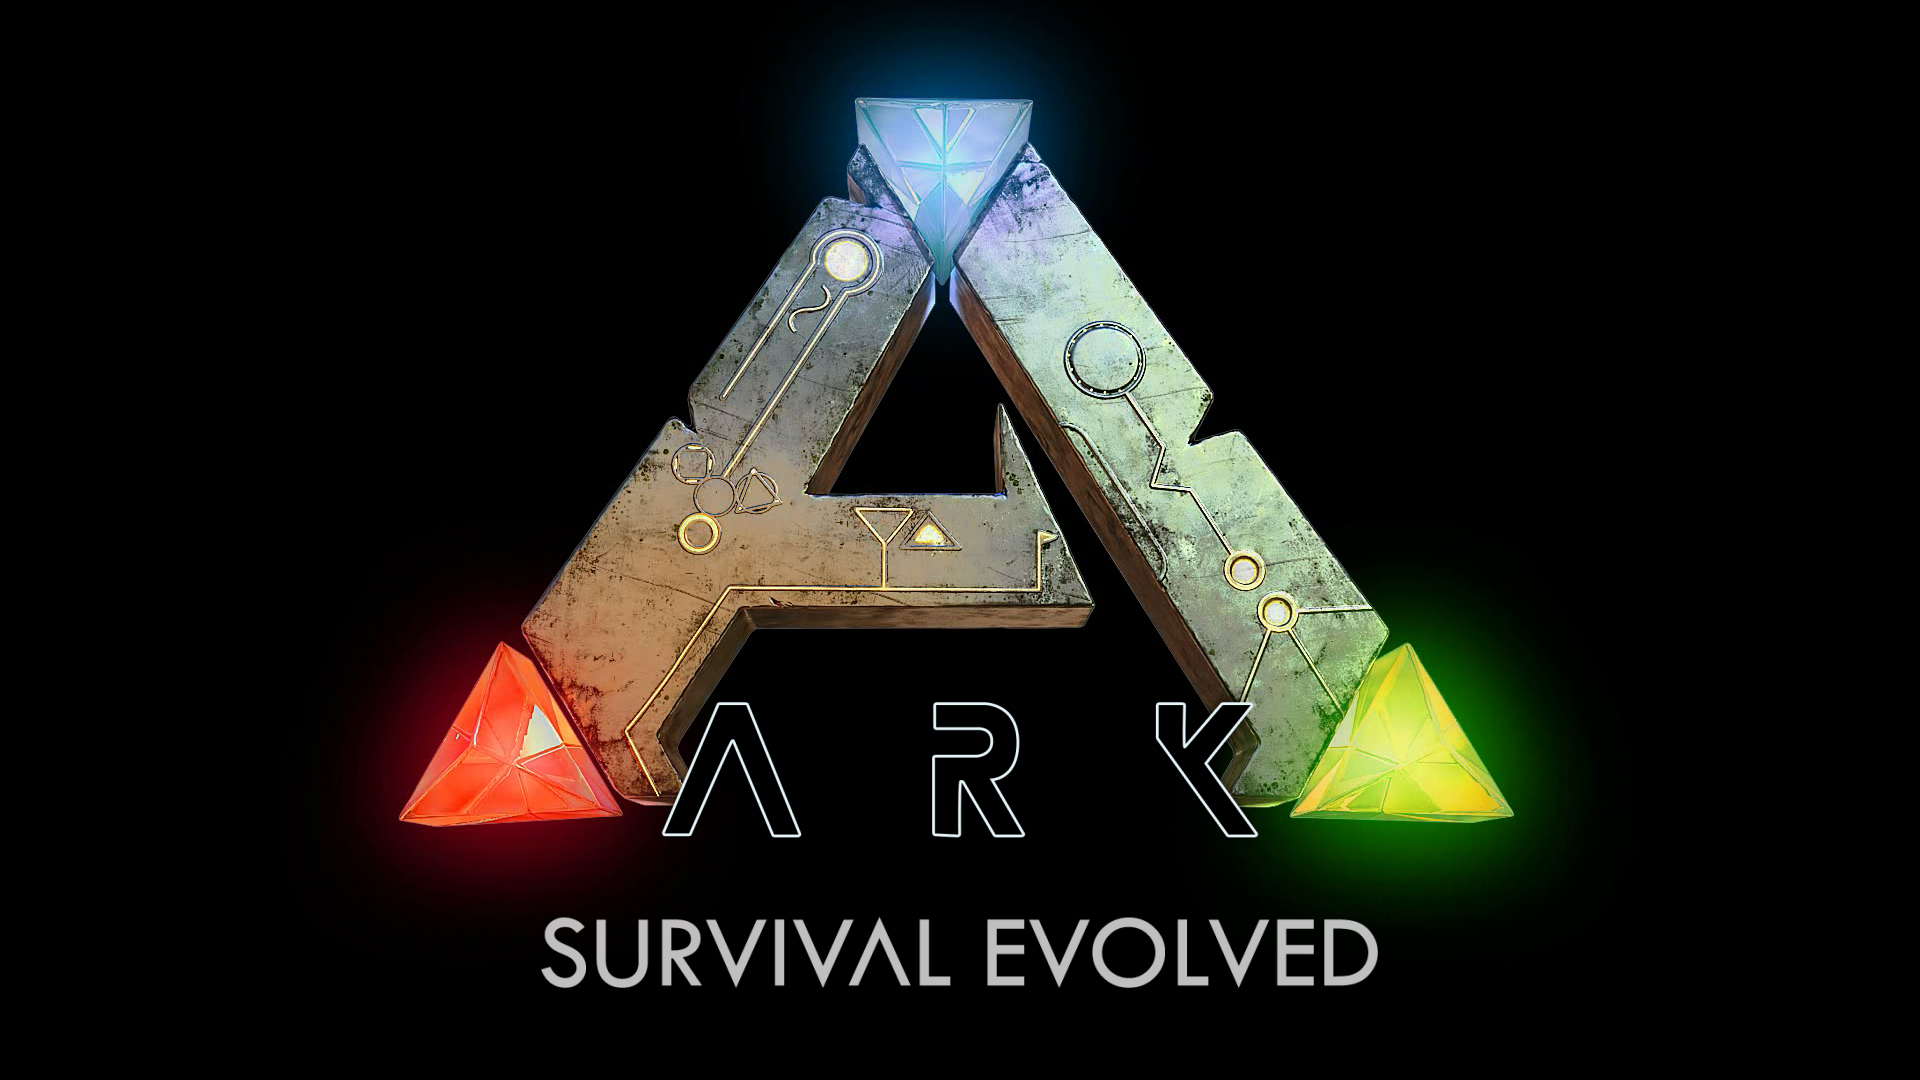 Ark survival evolved ps4 update 164 adds dino tlc xbox due soon ark survival evolved ps4 update 164 adds dino tlc xbox due soon player malvernweather